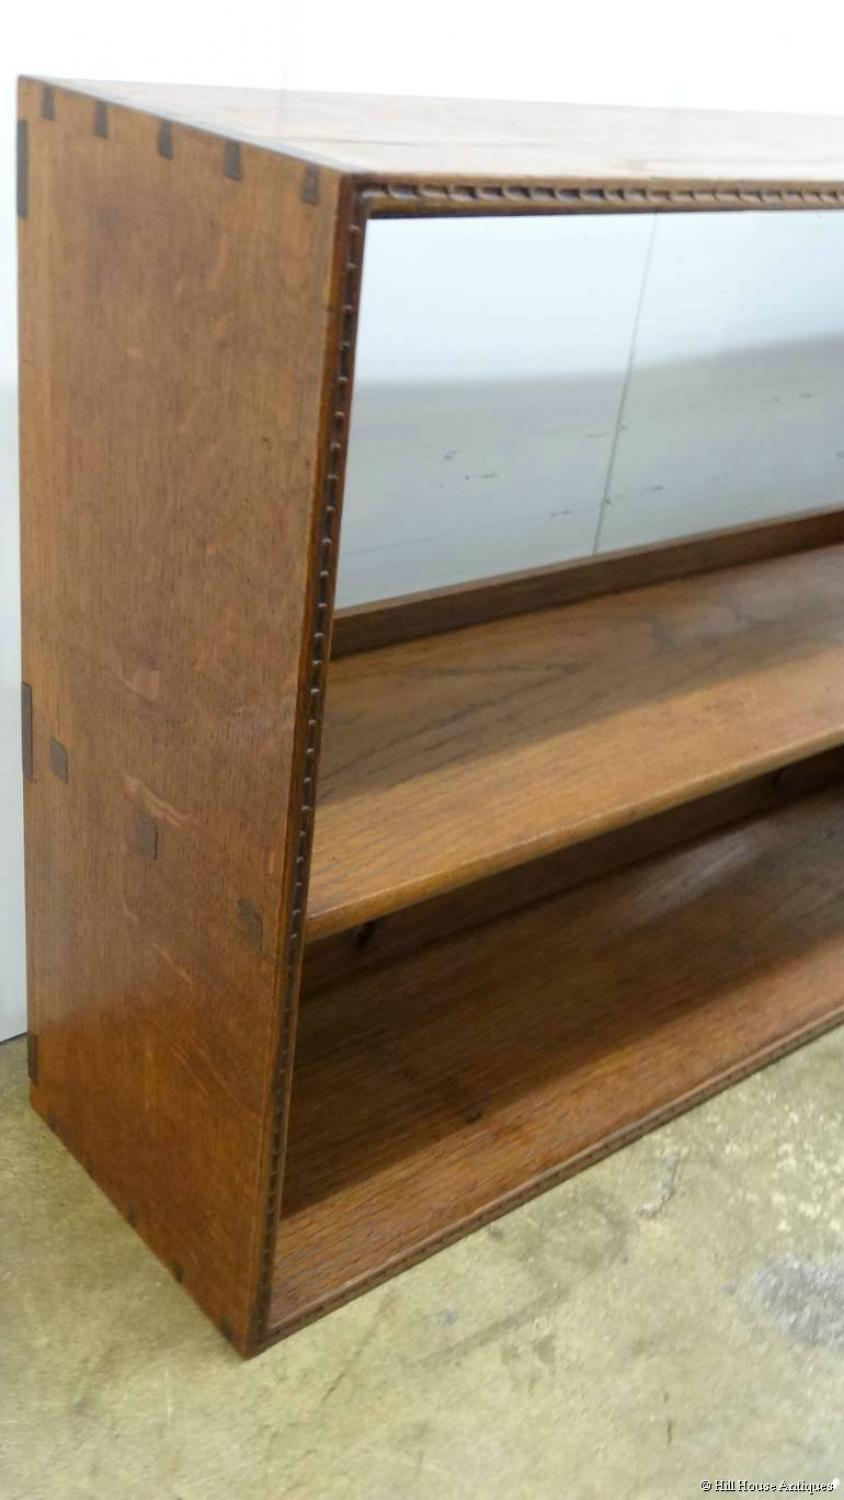 Cotswold School bookshelves Waals